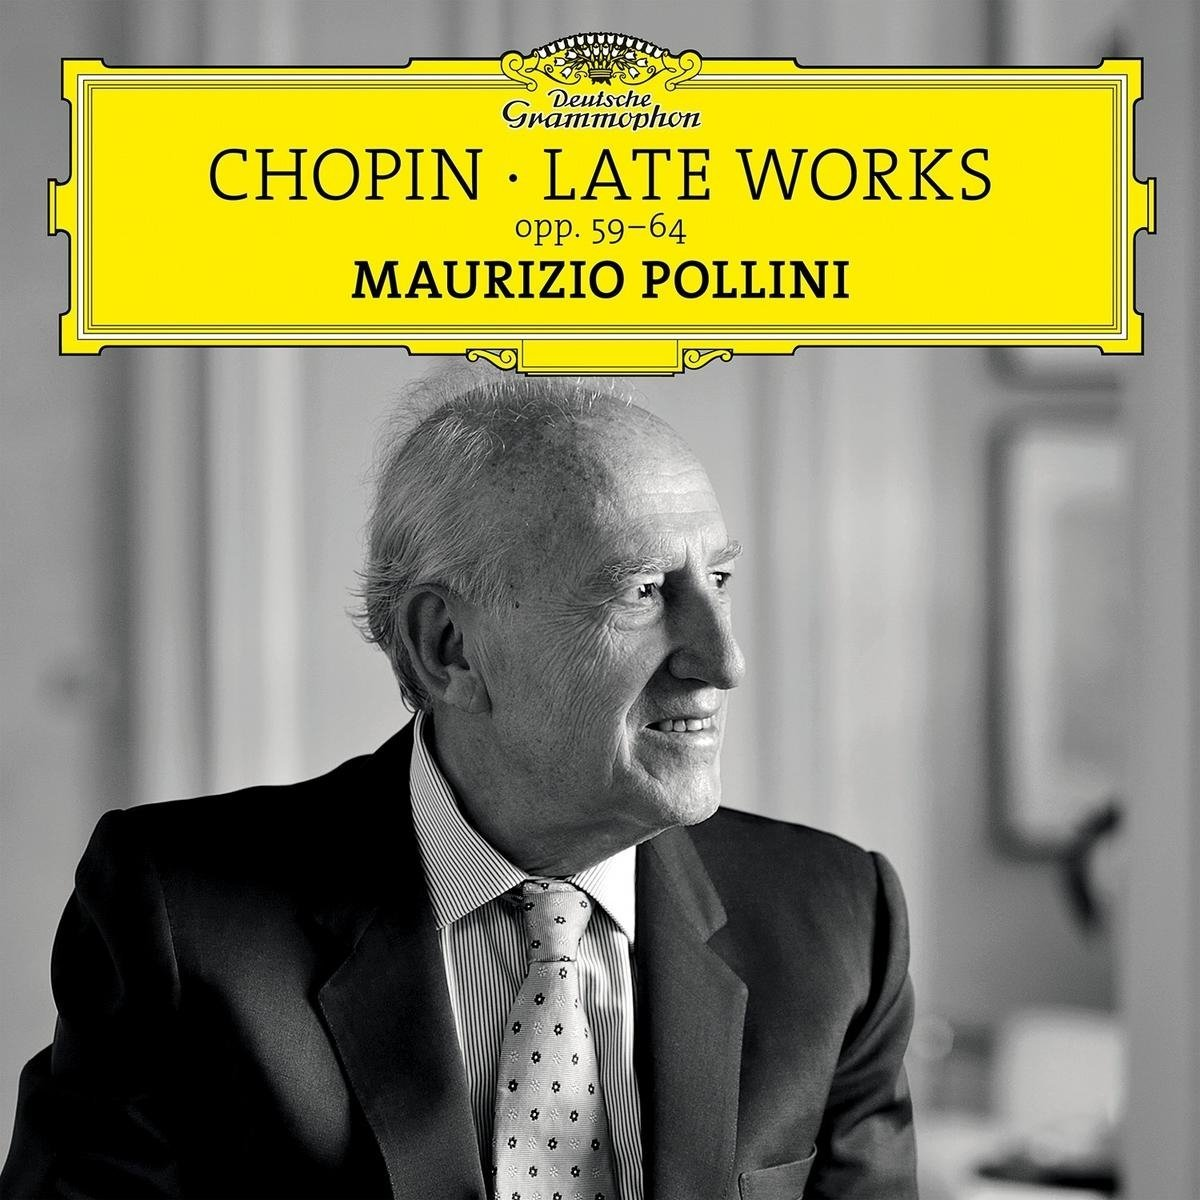 Chopin late works Pollini